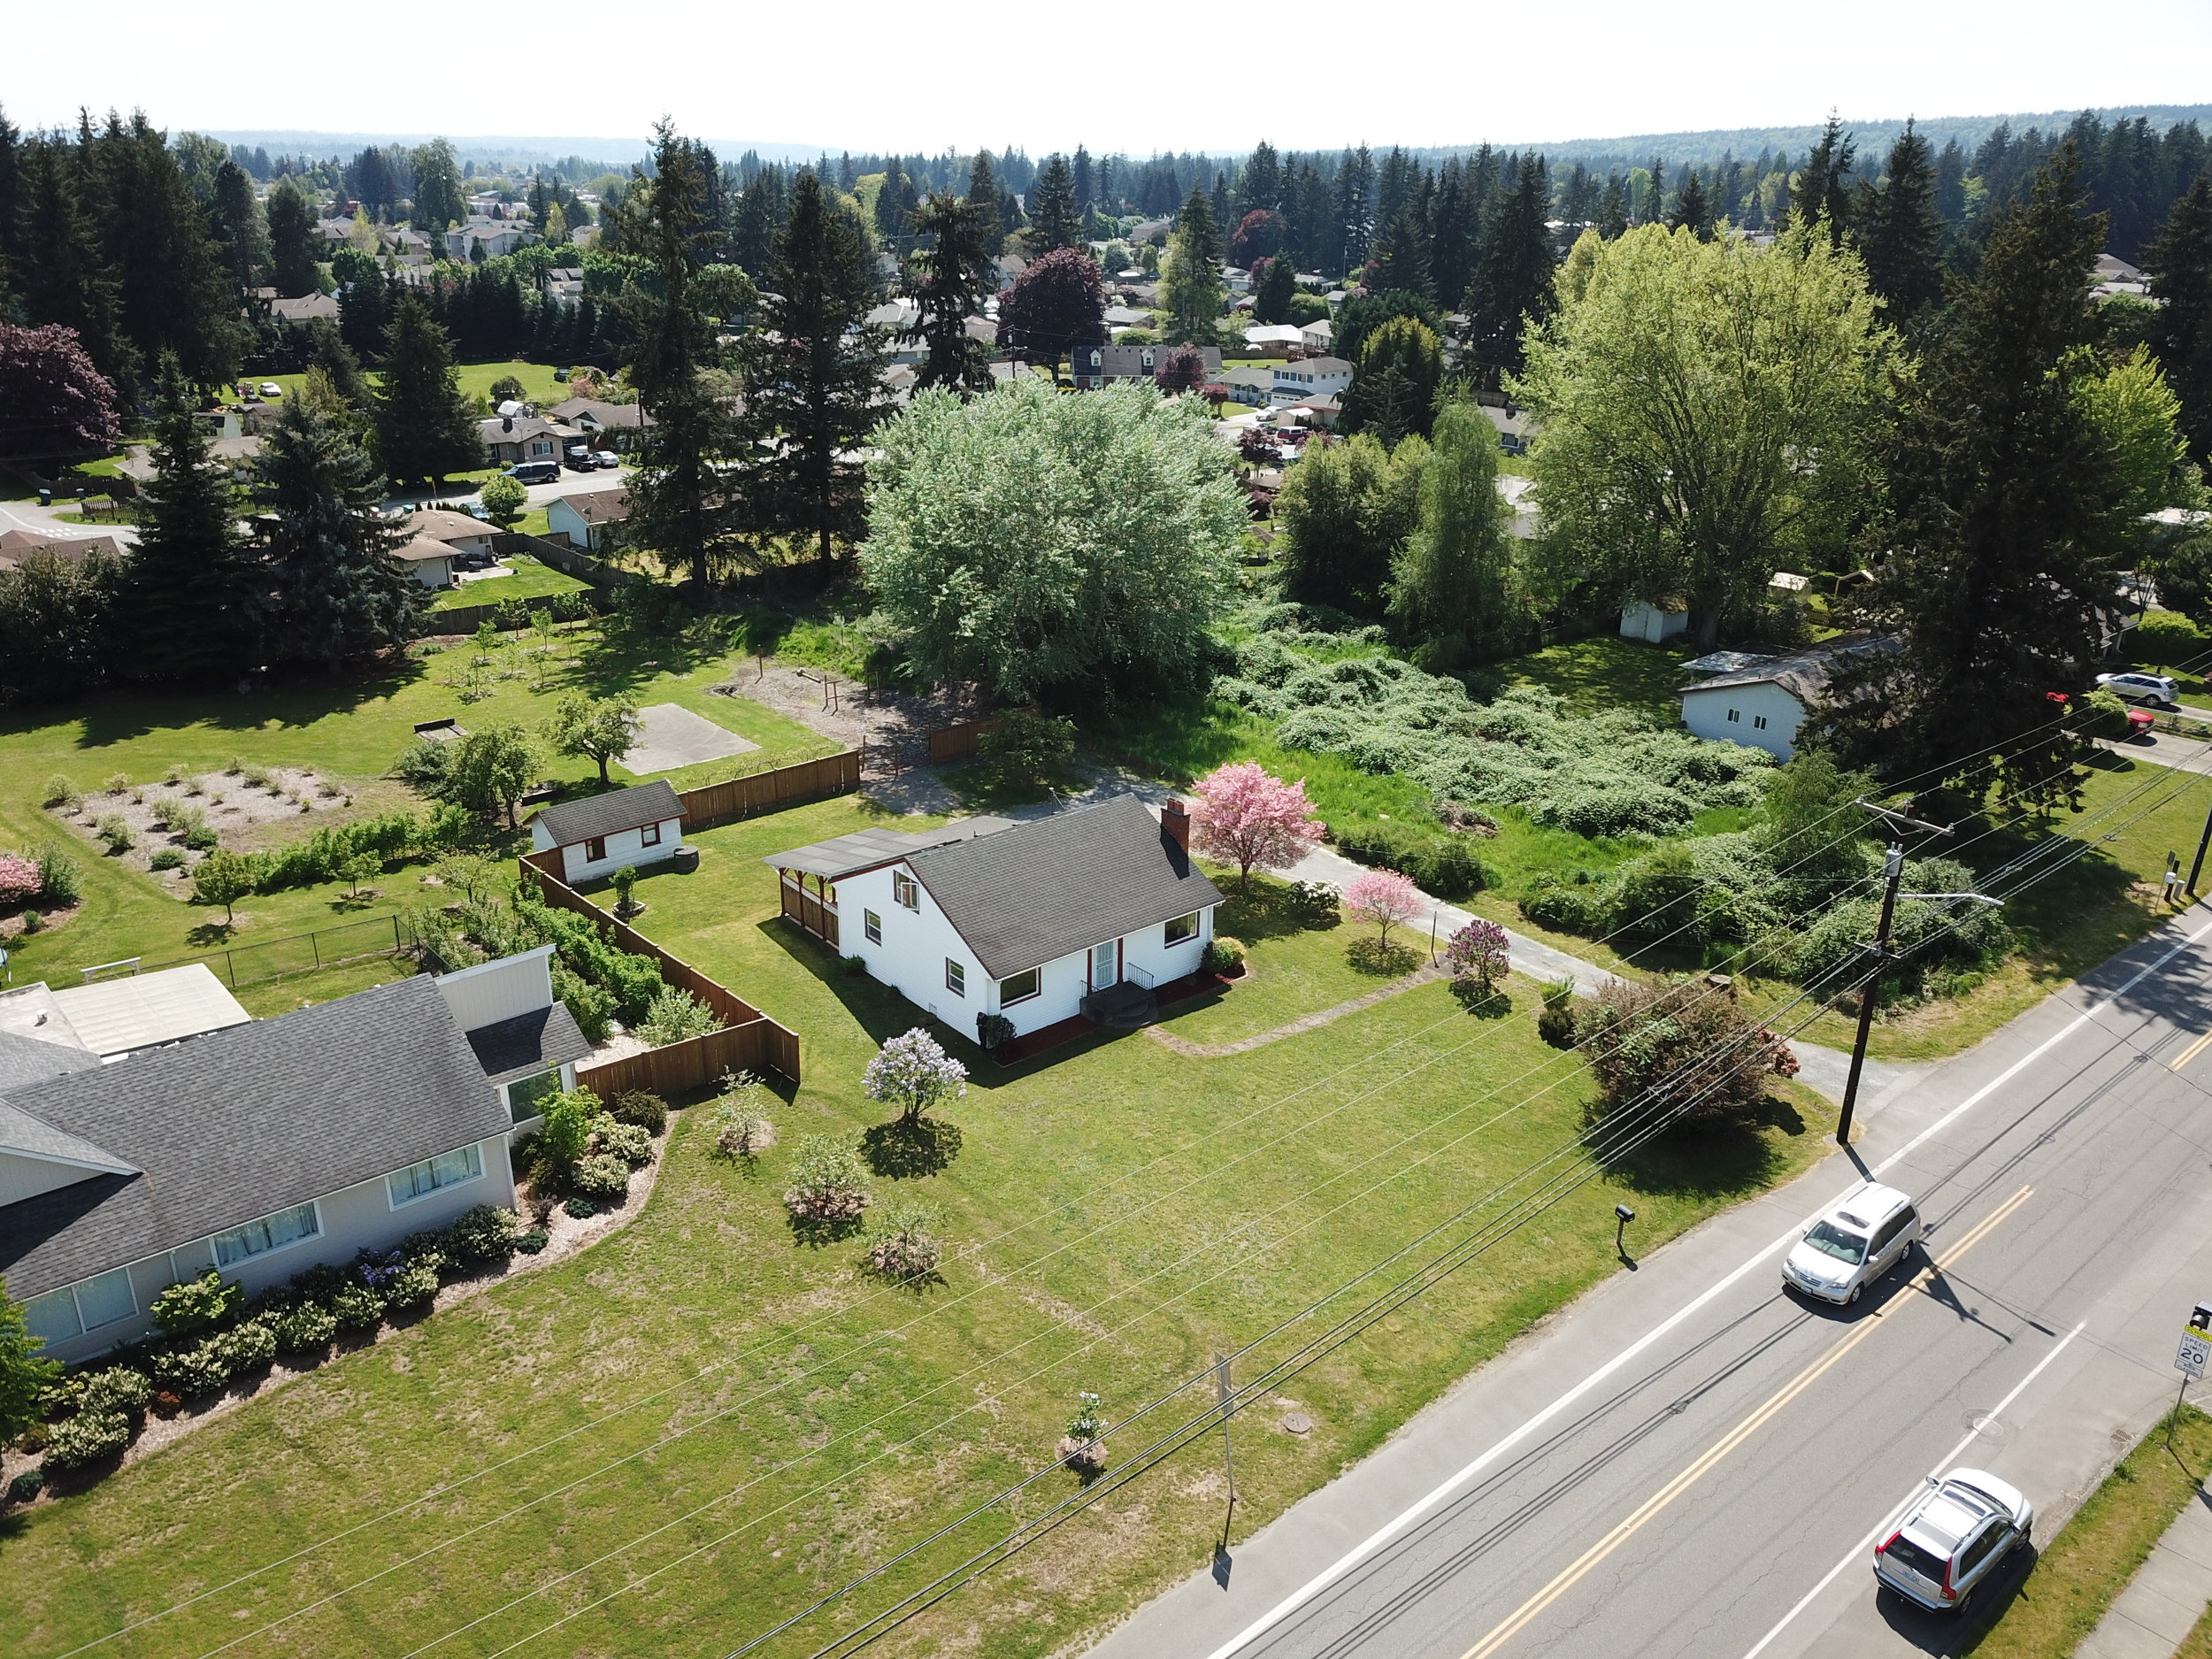 4716 88th ST NE - Marysville, WA // SOLD